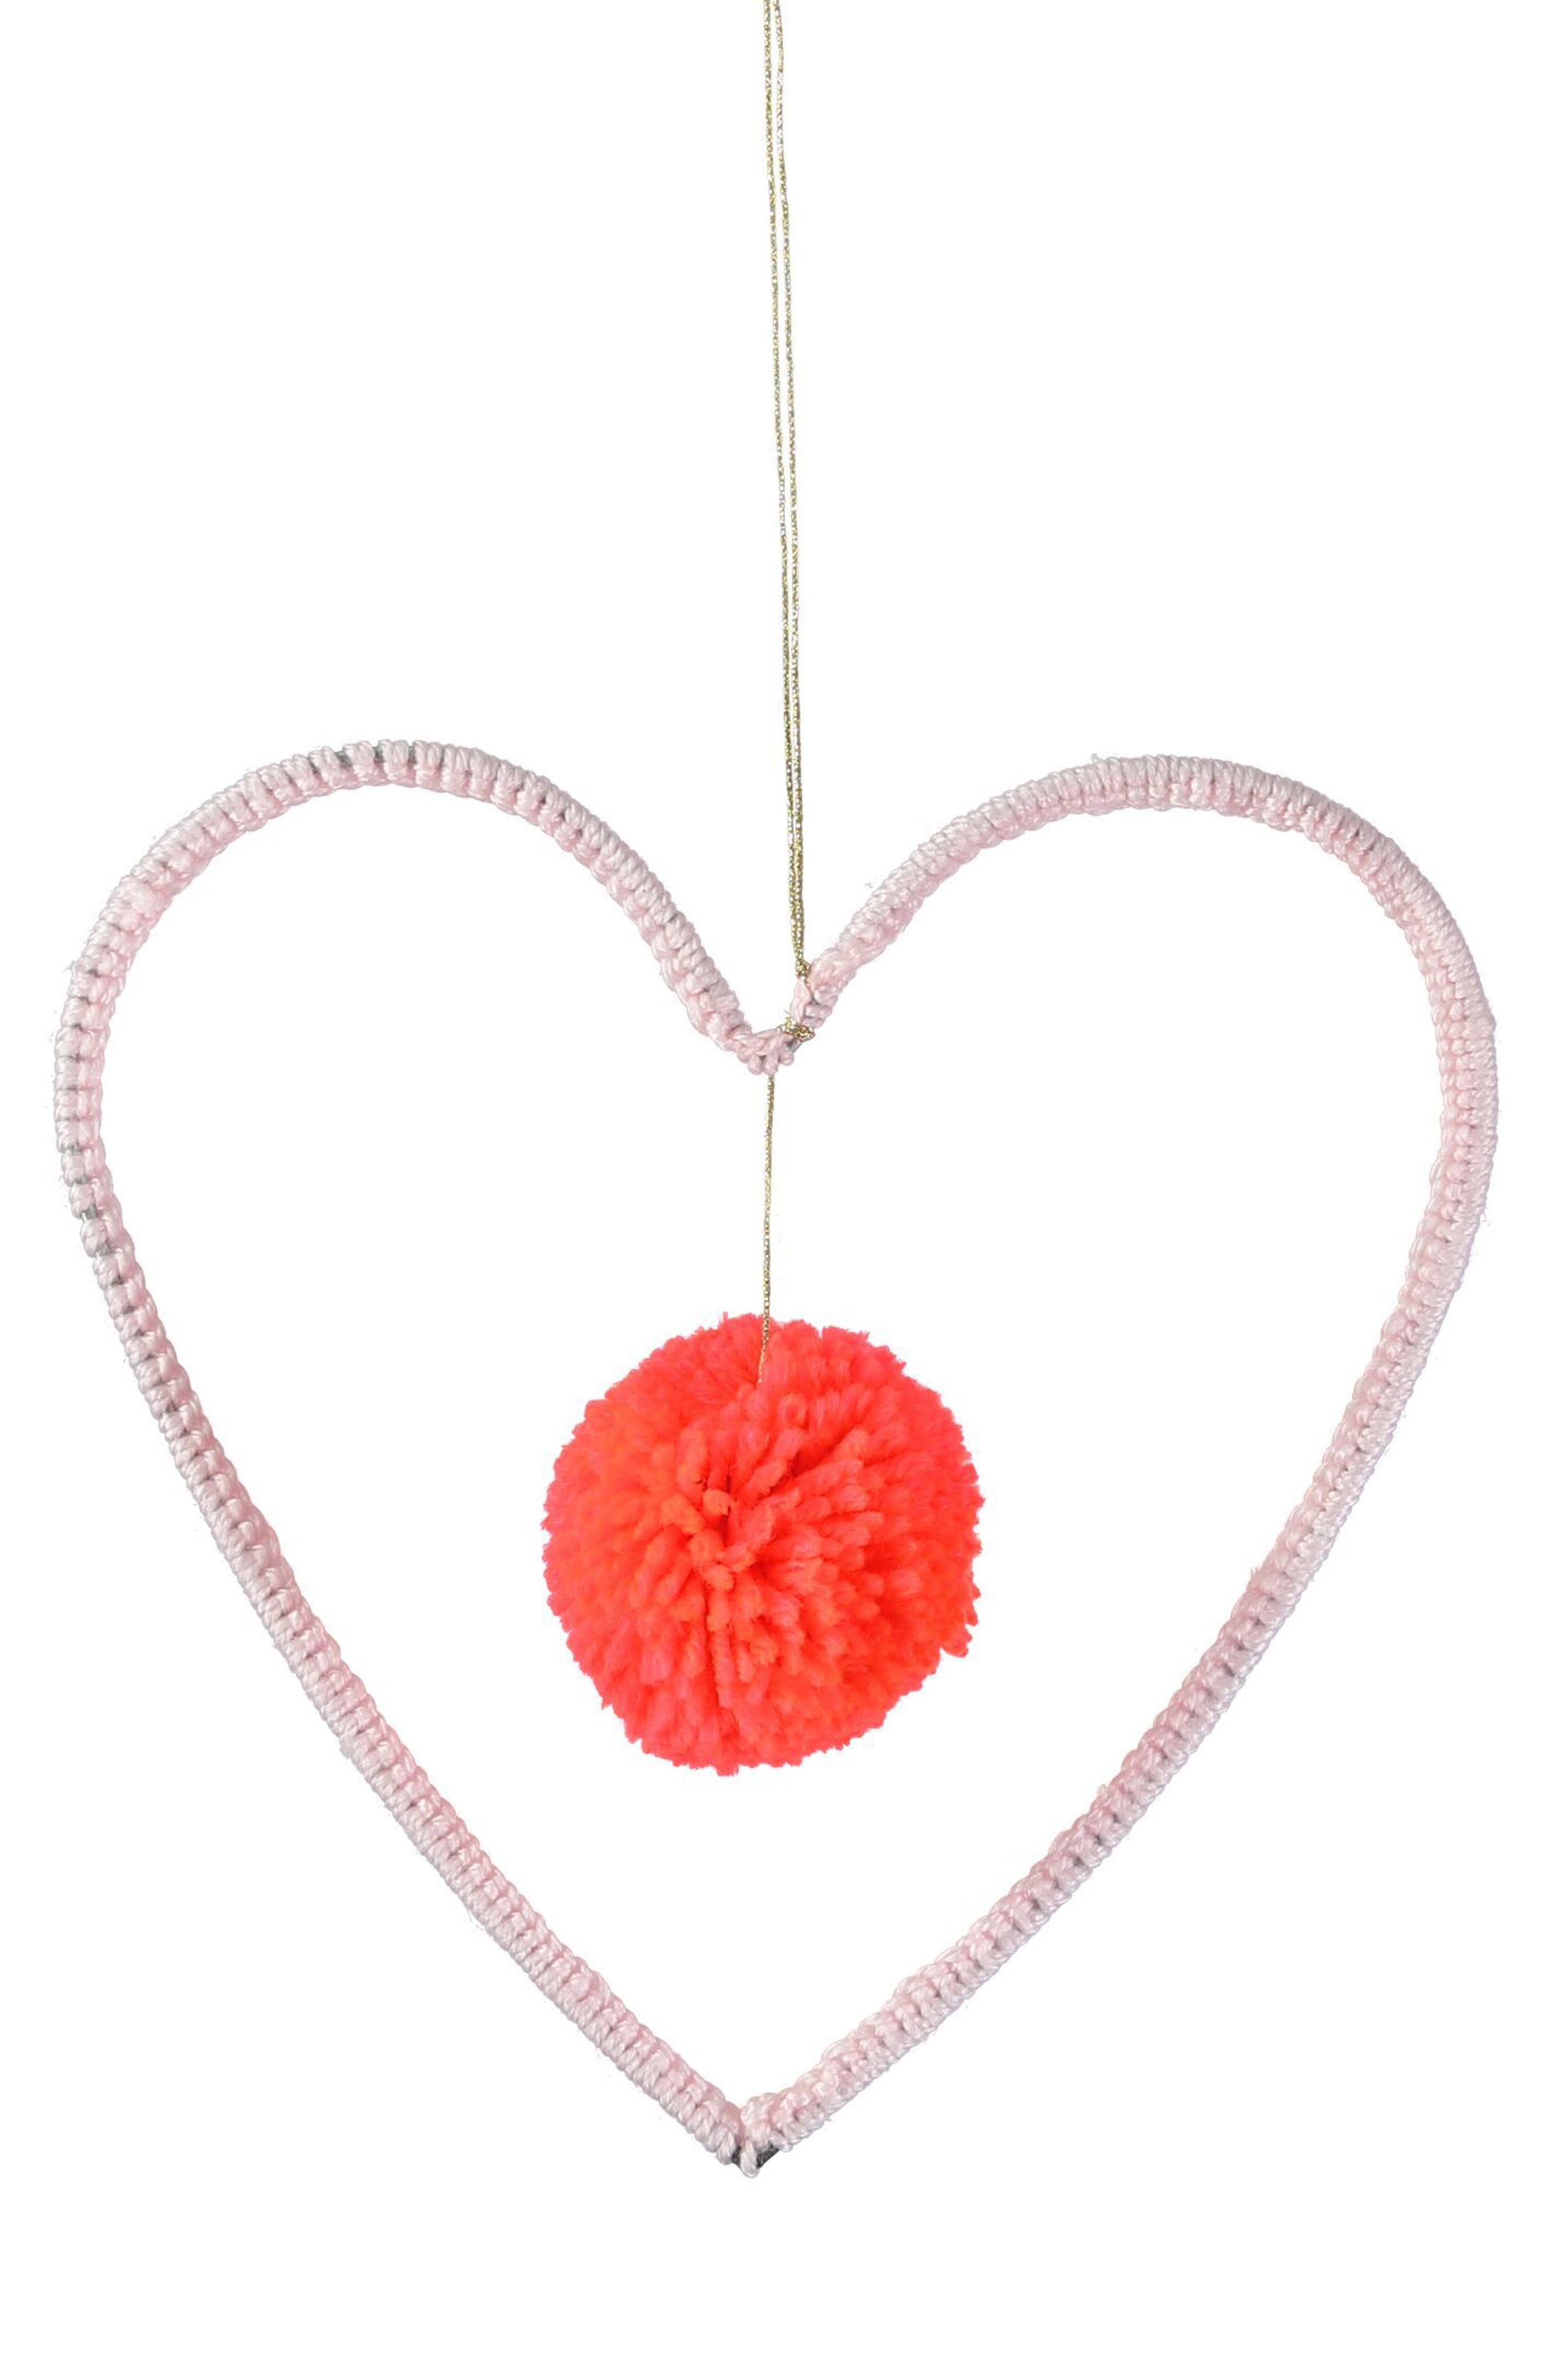 Meri Meri Hanging Heart & Pom Wall Art